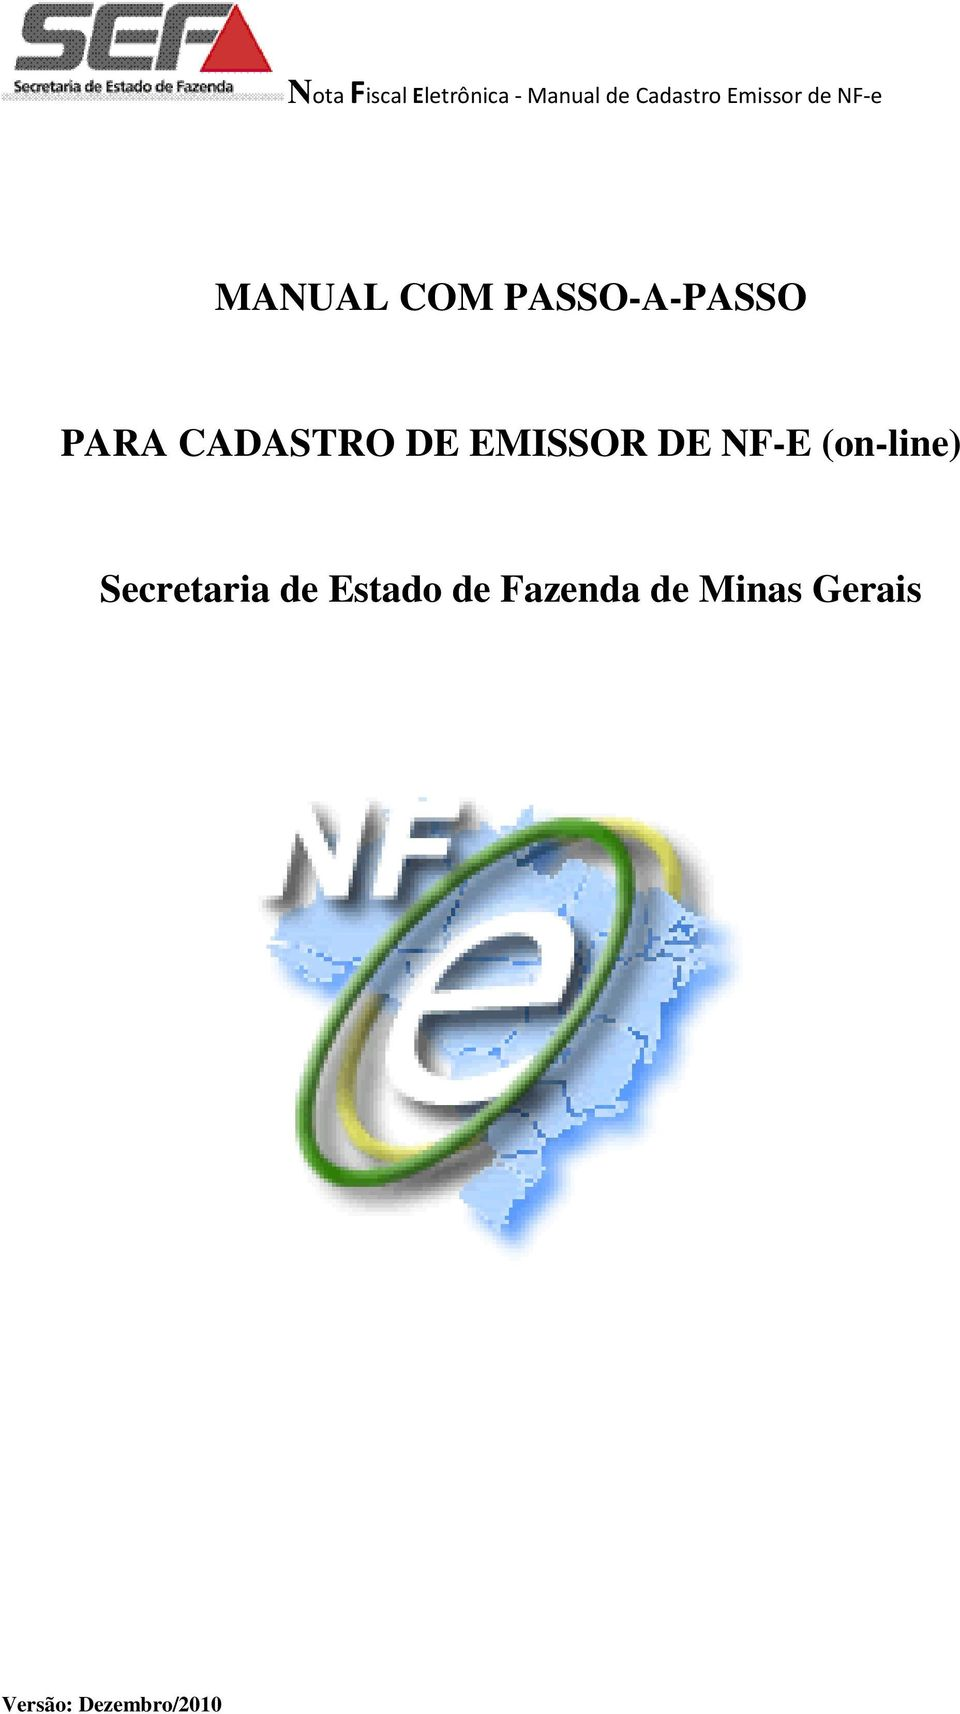 (on-line) Secretaria de Estado de